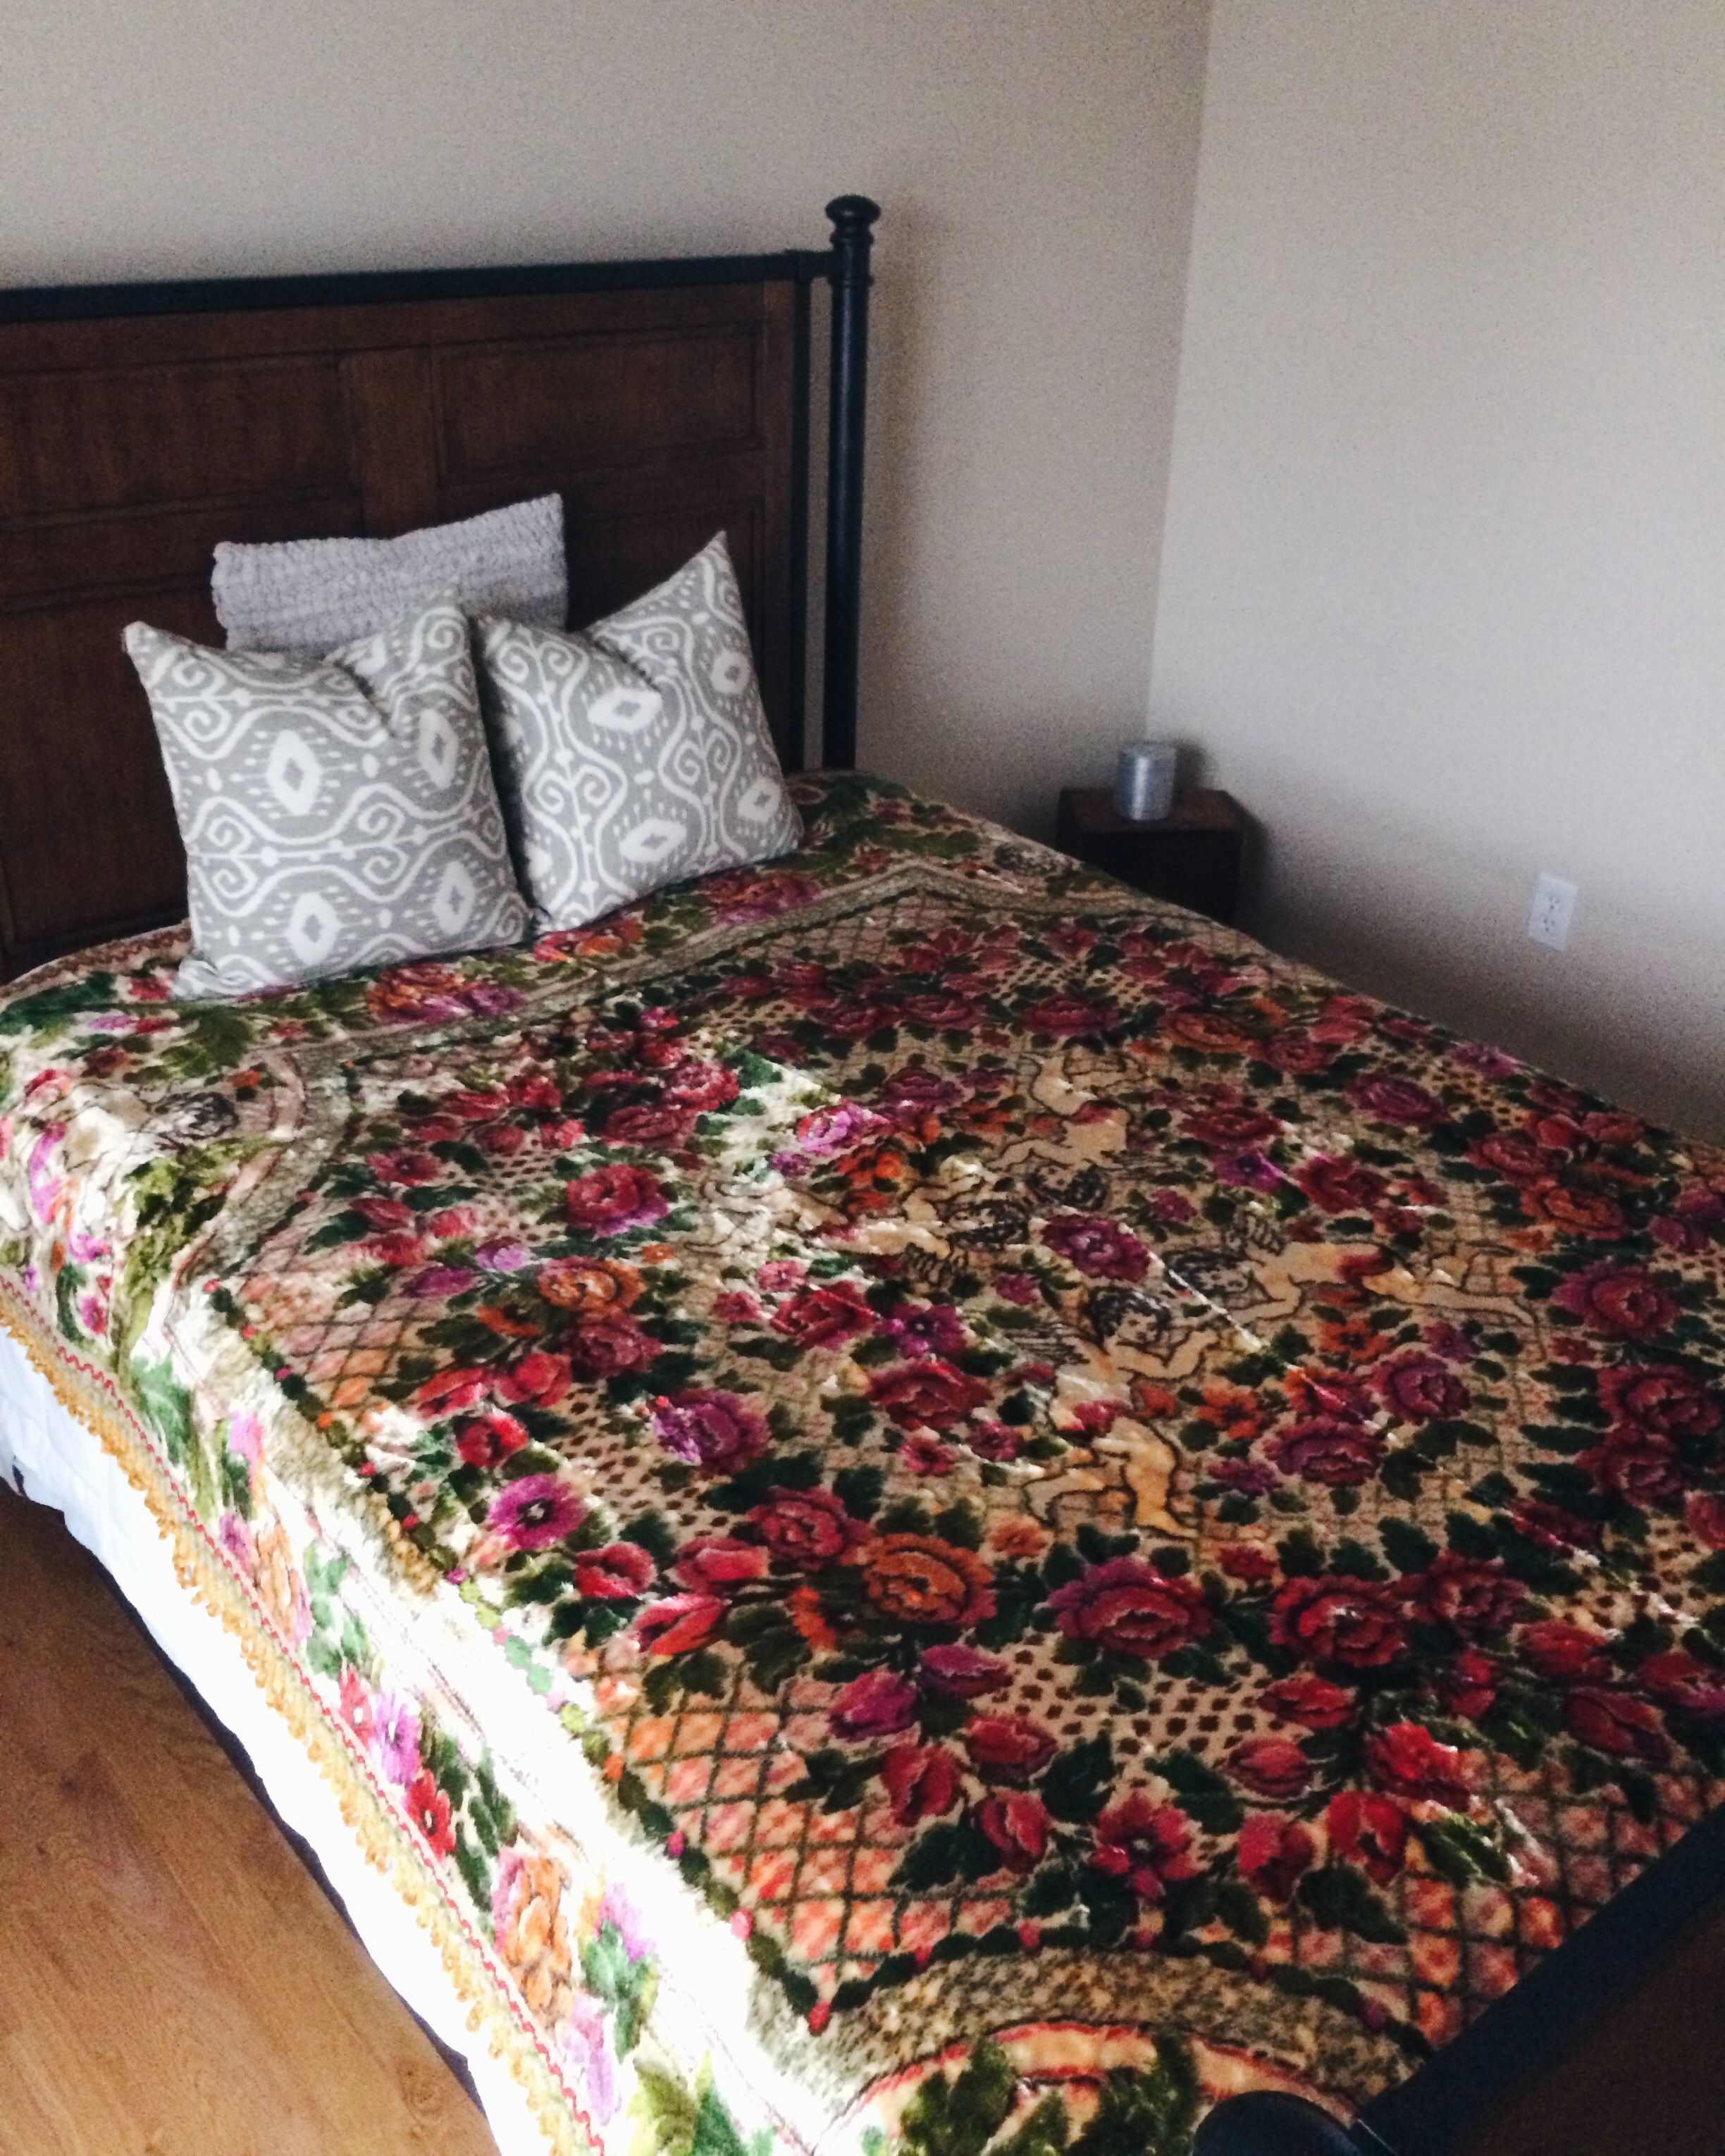 Vintage Velvet Italian Bedspread With Roses And Cherubs